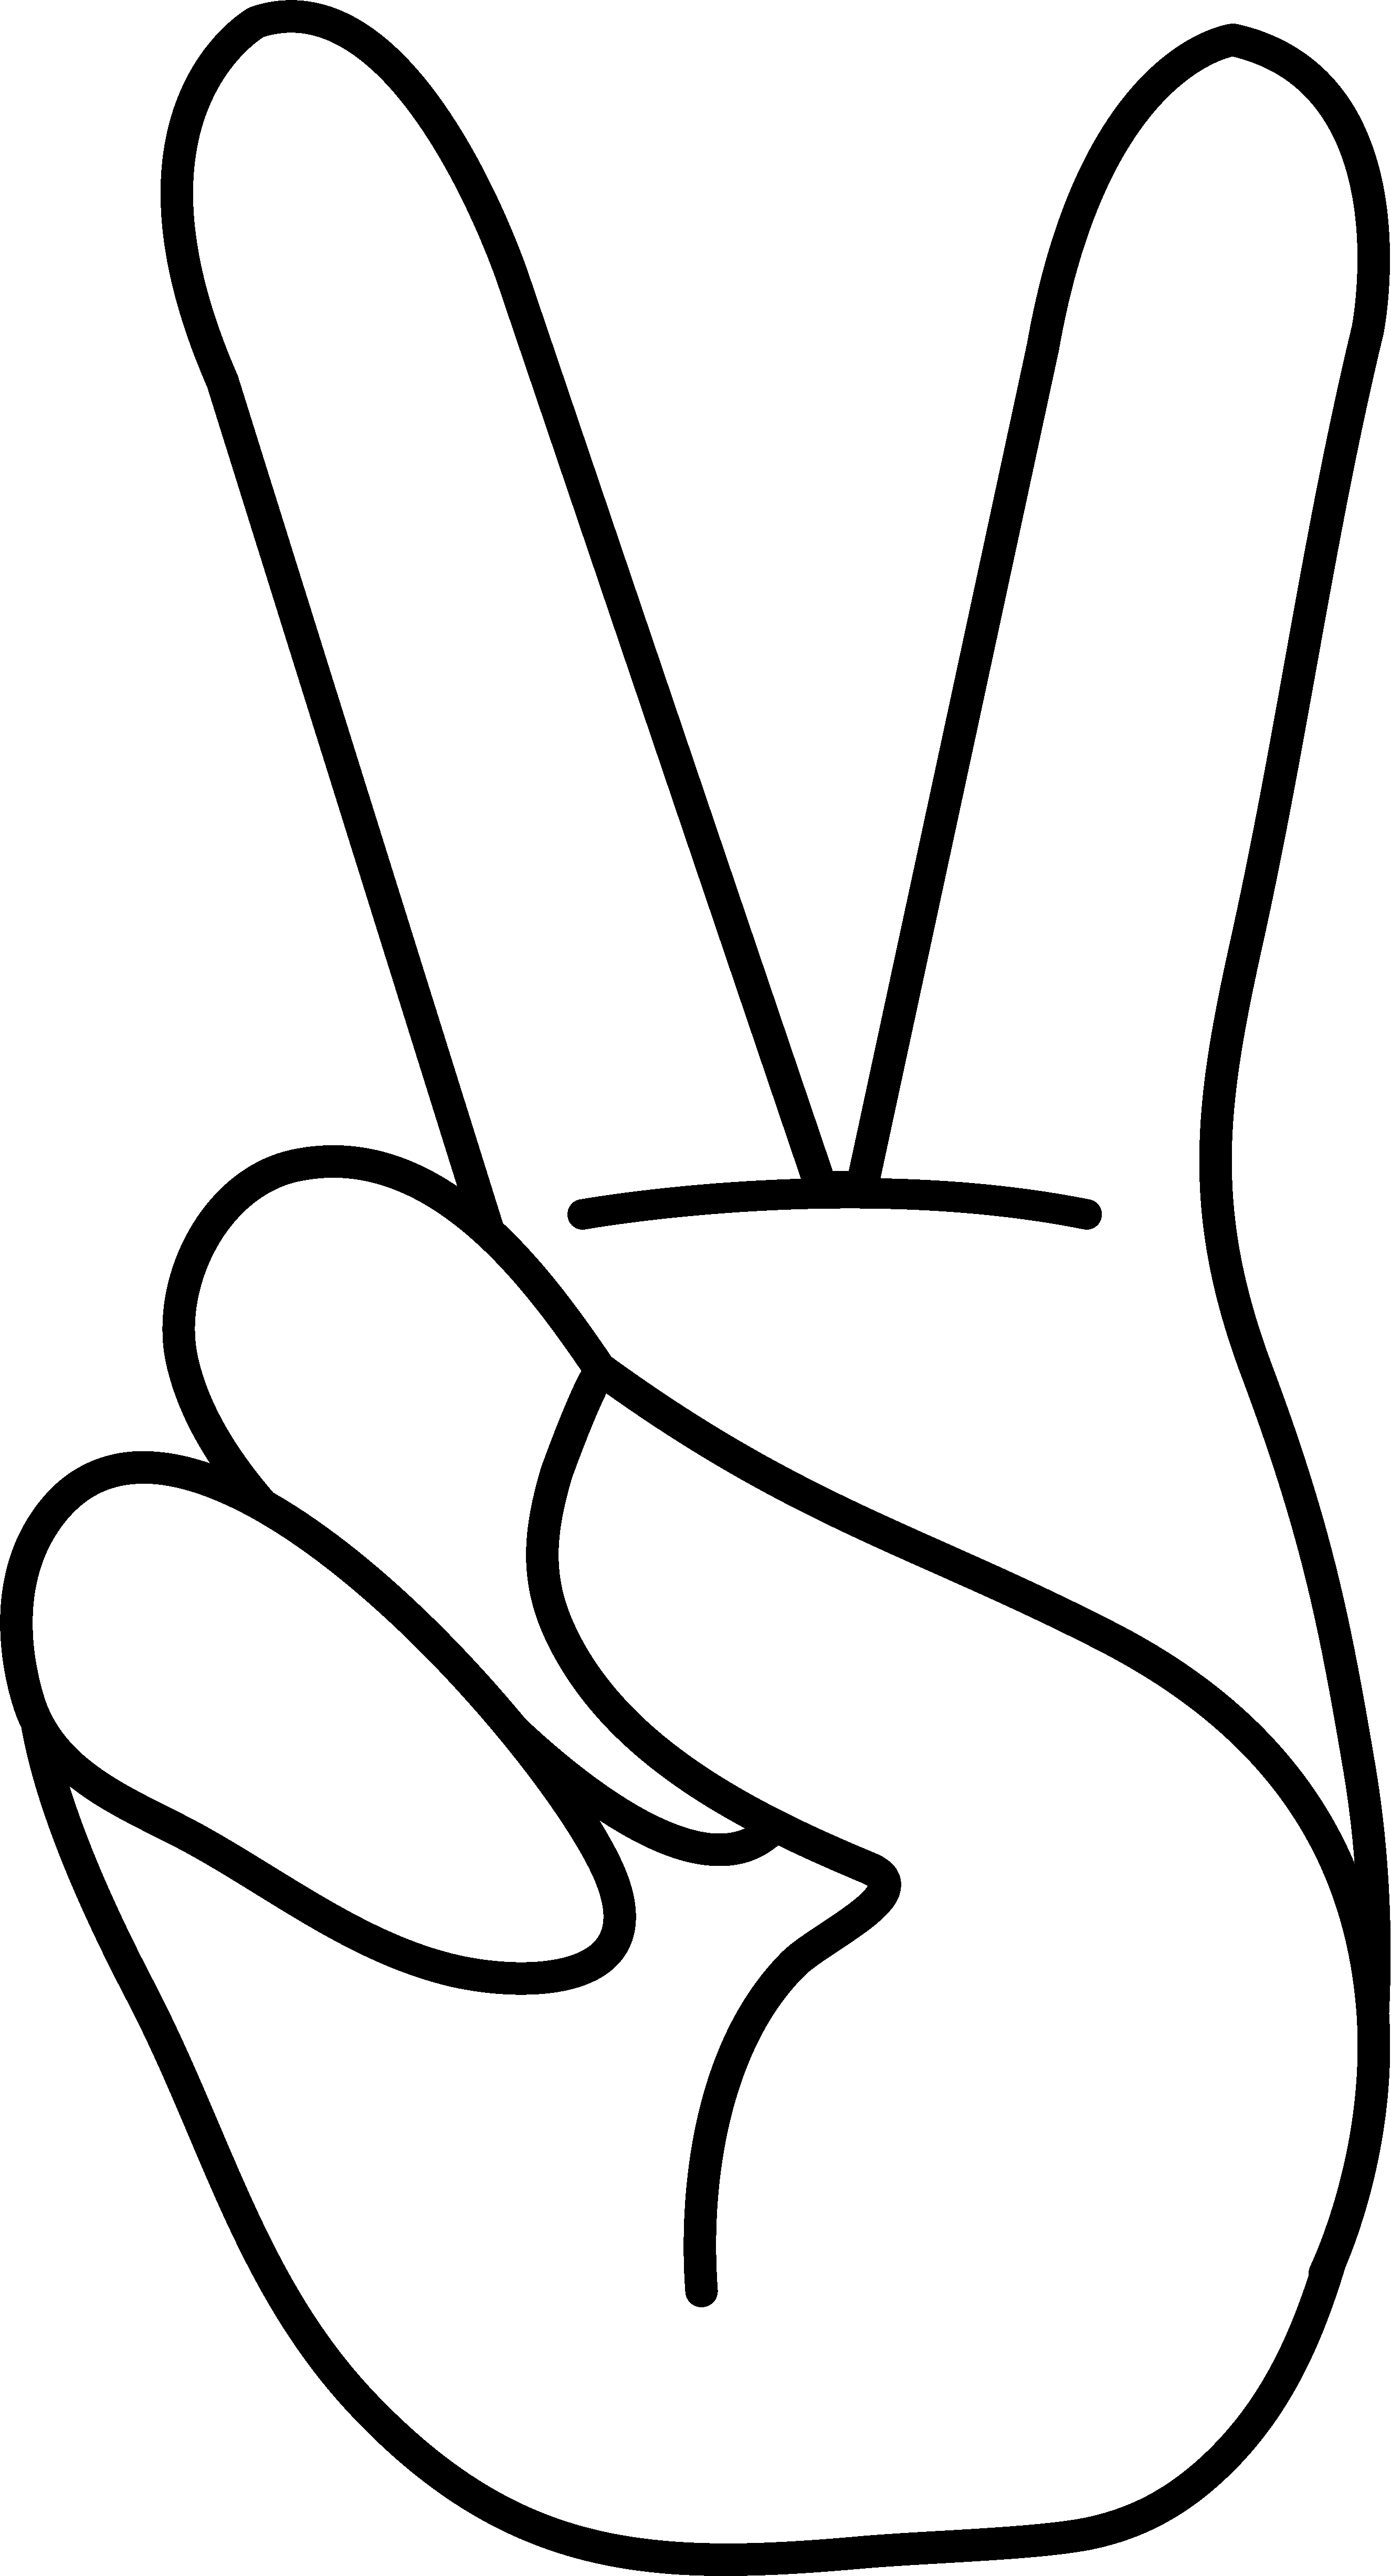 Hand clipart peace. Sign panda free images